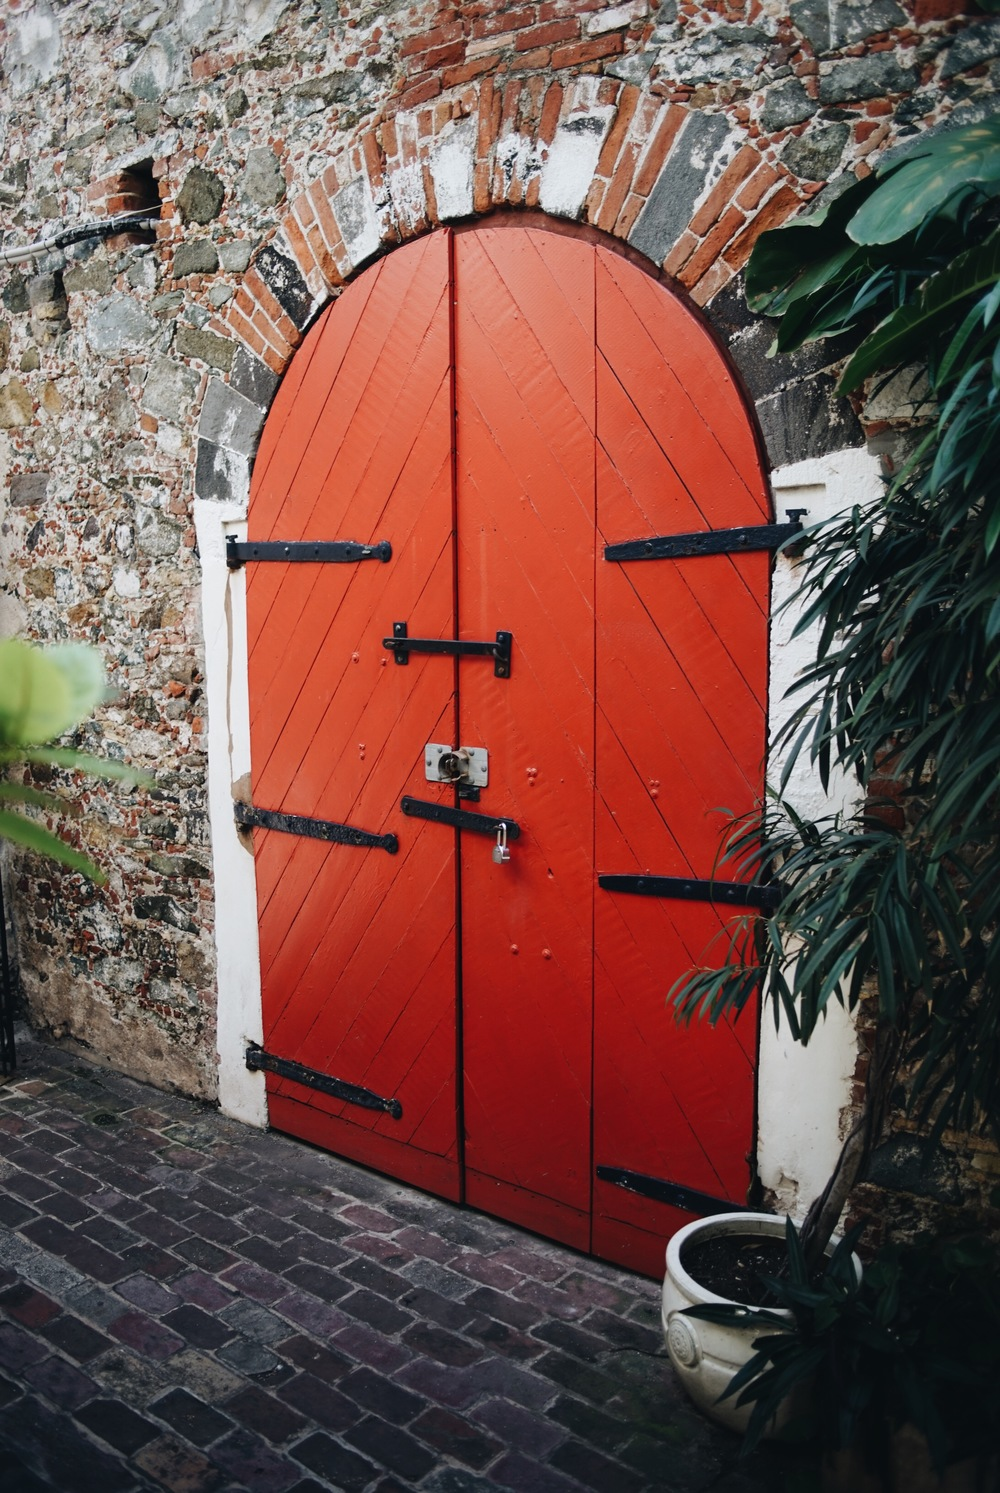 Just a red door in St. Thomas? Or gateway to another world?